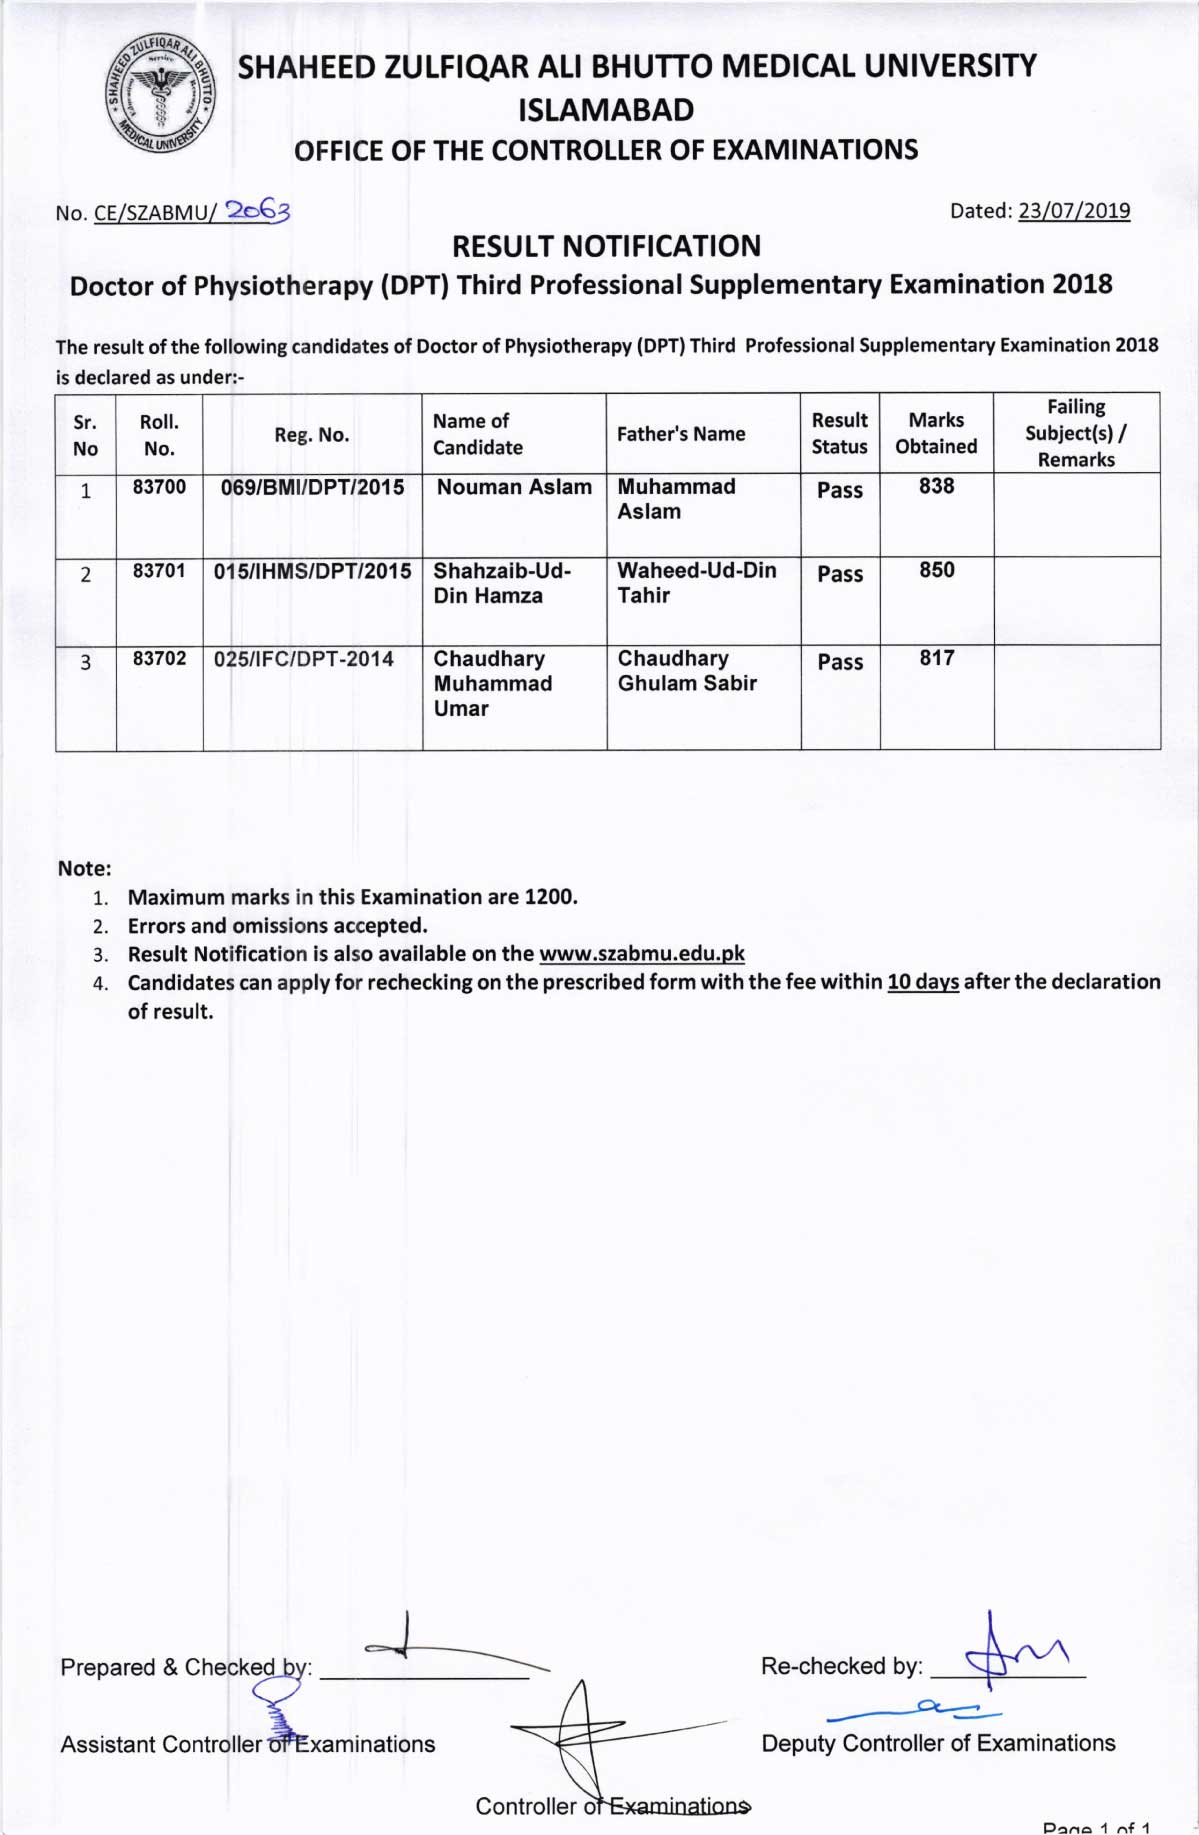 Result Notification of DPT 1st, 2nd, 3rd & 4th Professional Supplementary Examinations 2018